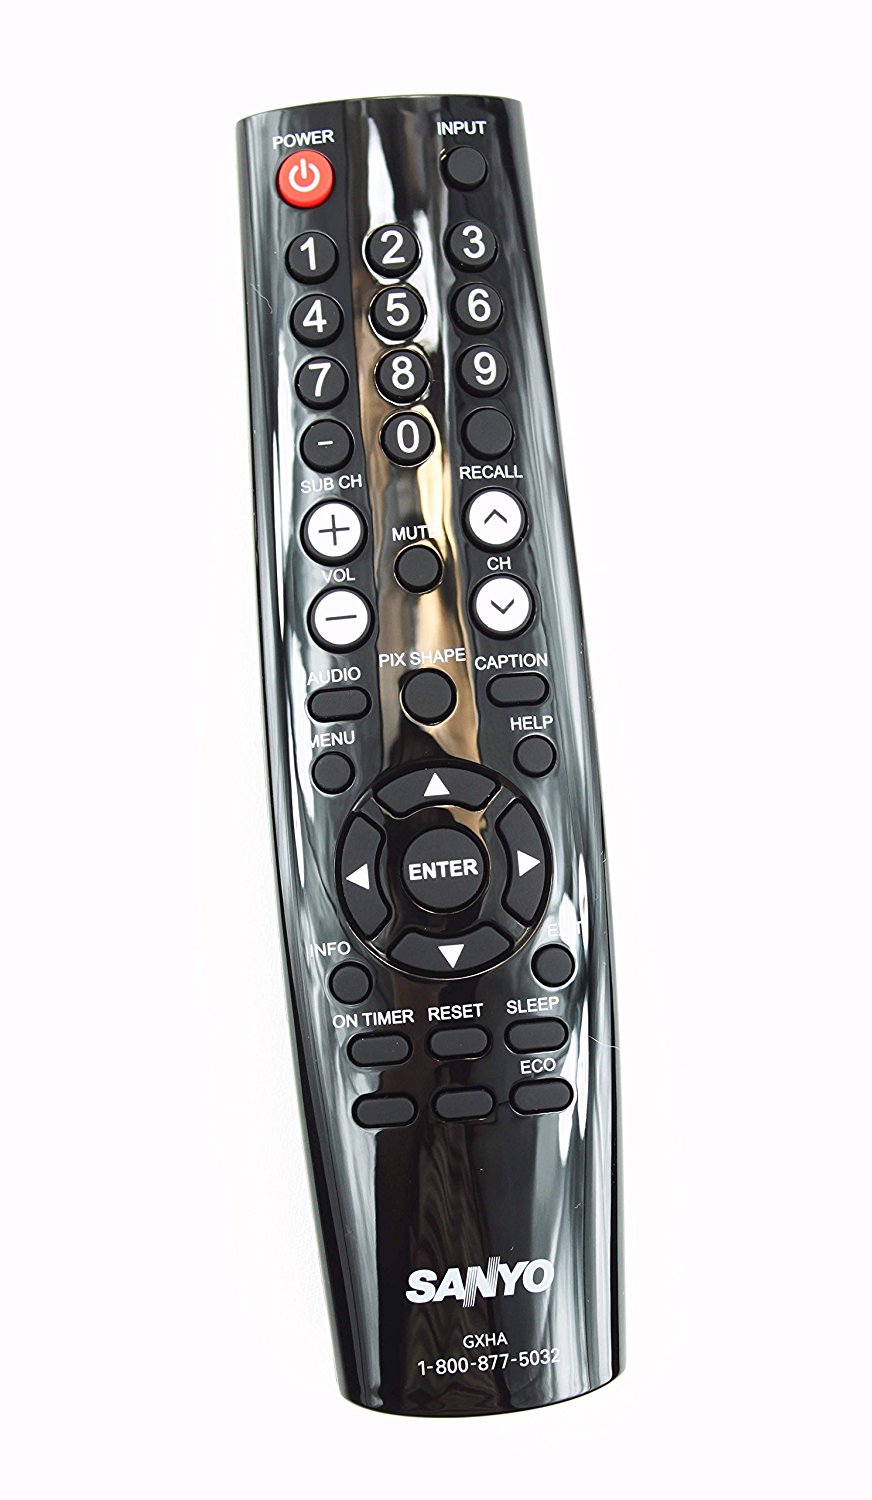 NEW Sanyo LCD LED TV Remote Control GXHA Supplied with models FVD5833 DP50843 DP58D33